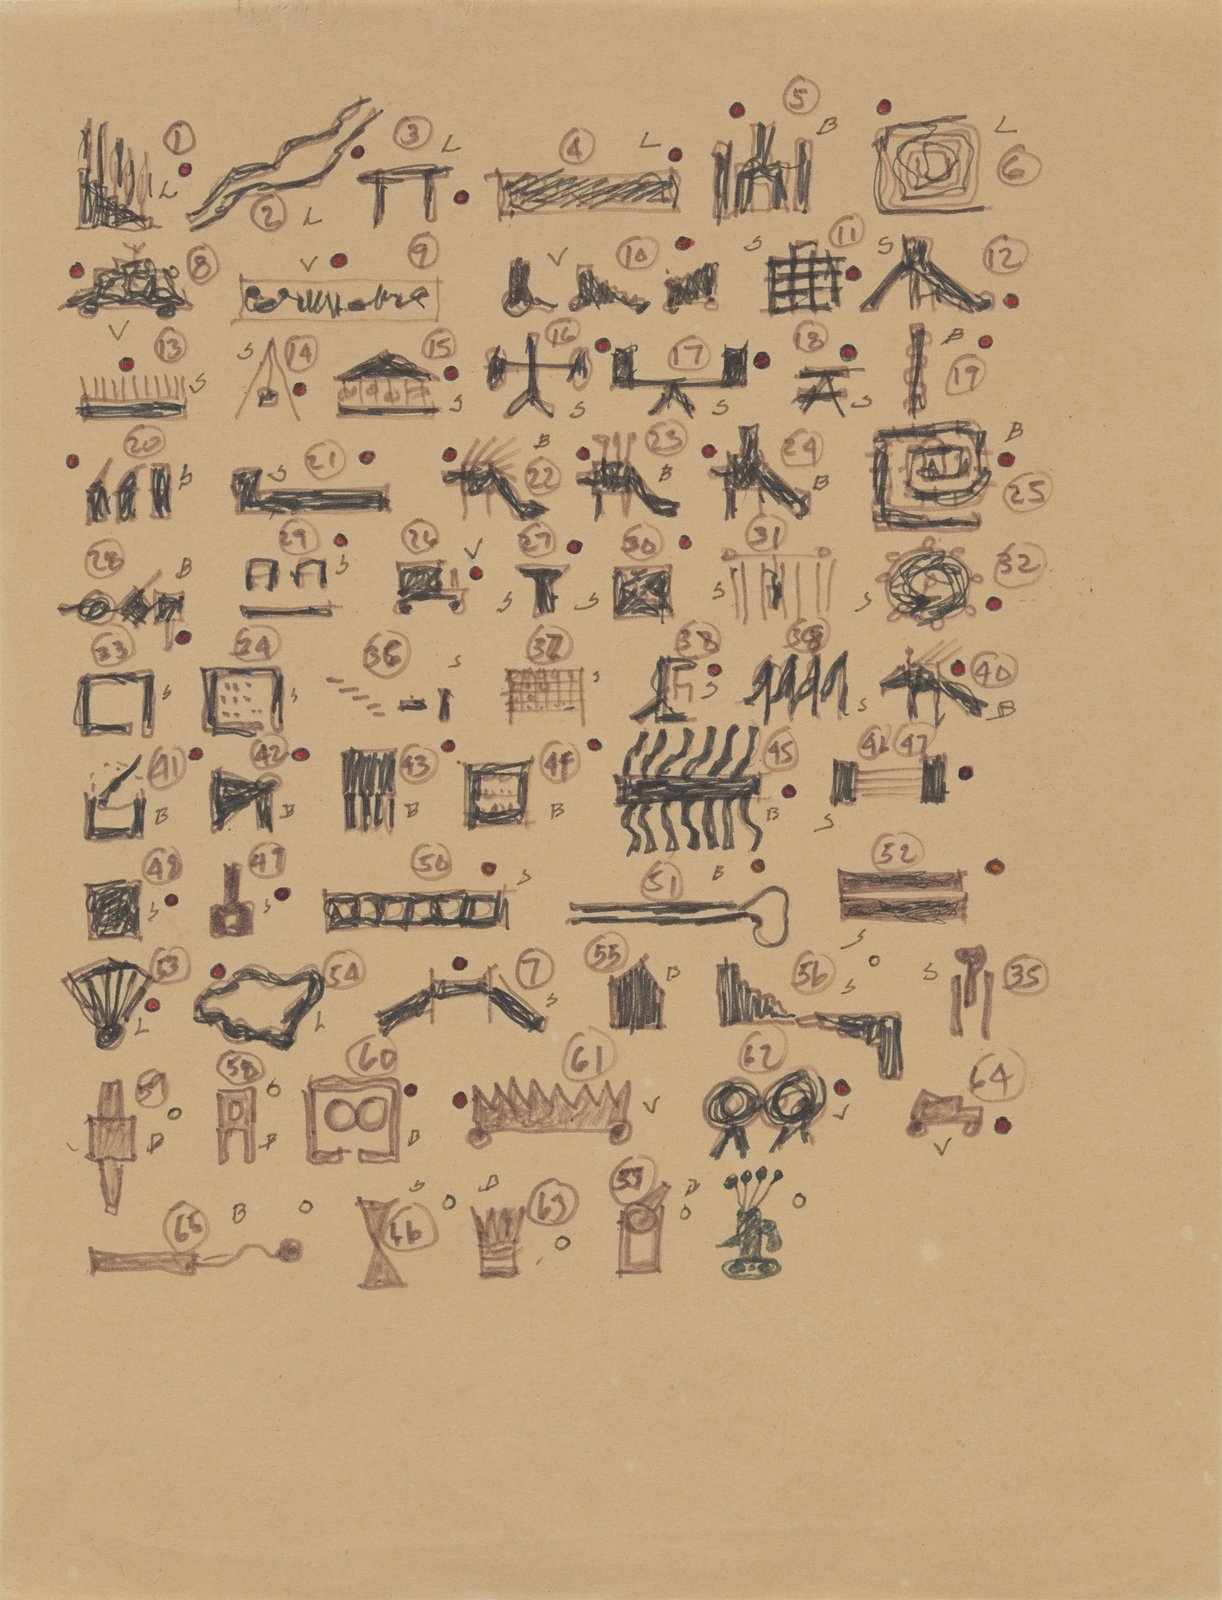 John Hejduk, Victims, 1986. Taxonomy of structures. Early Drawings by Famous Architects - Photo 5 of 8